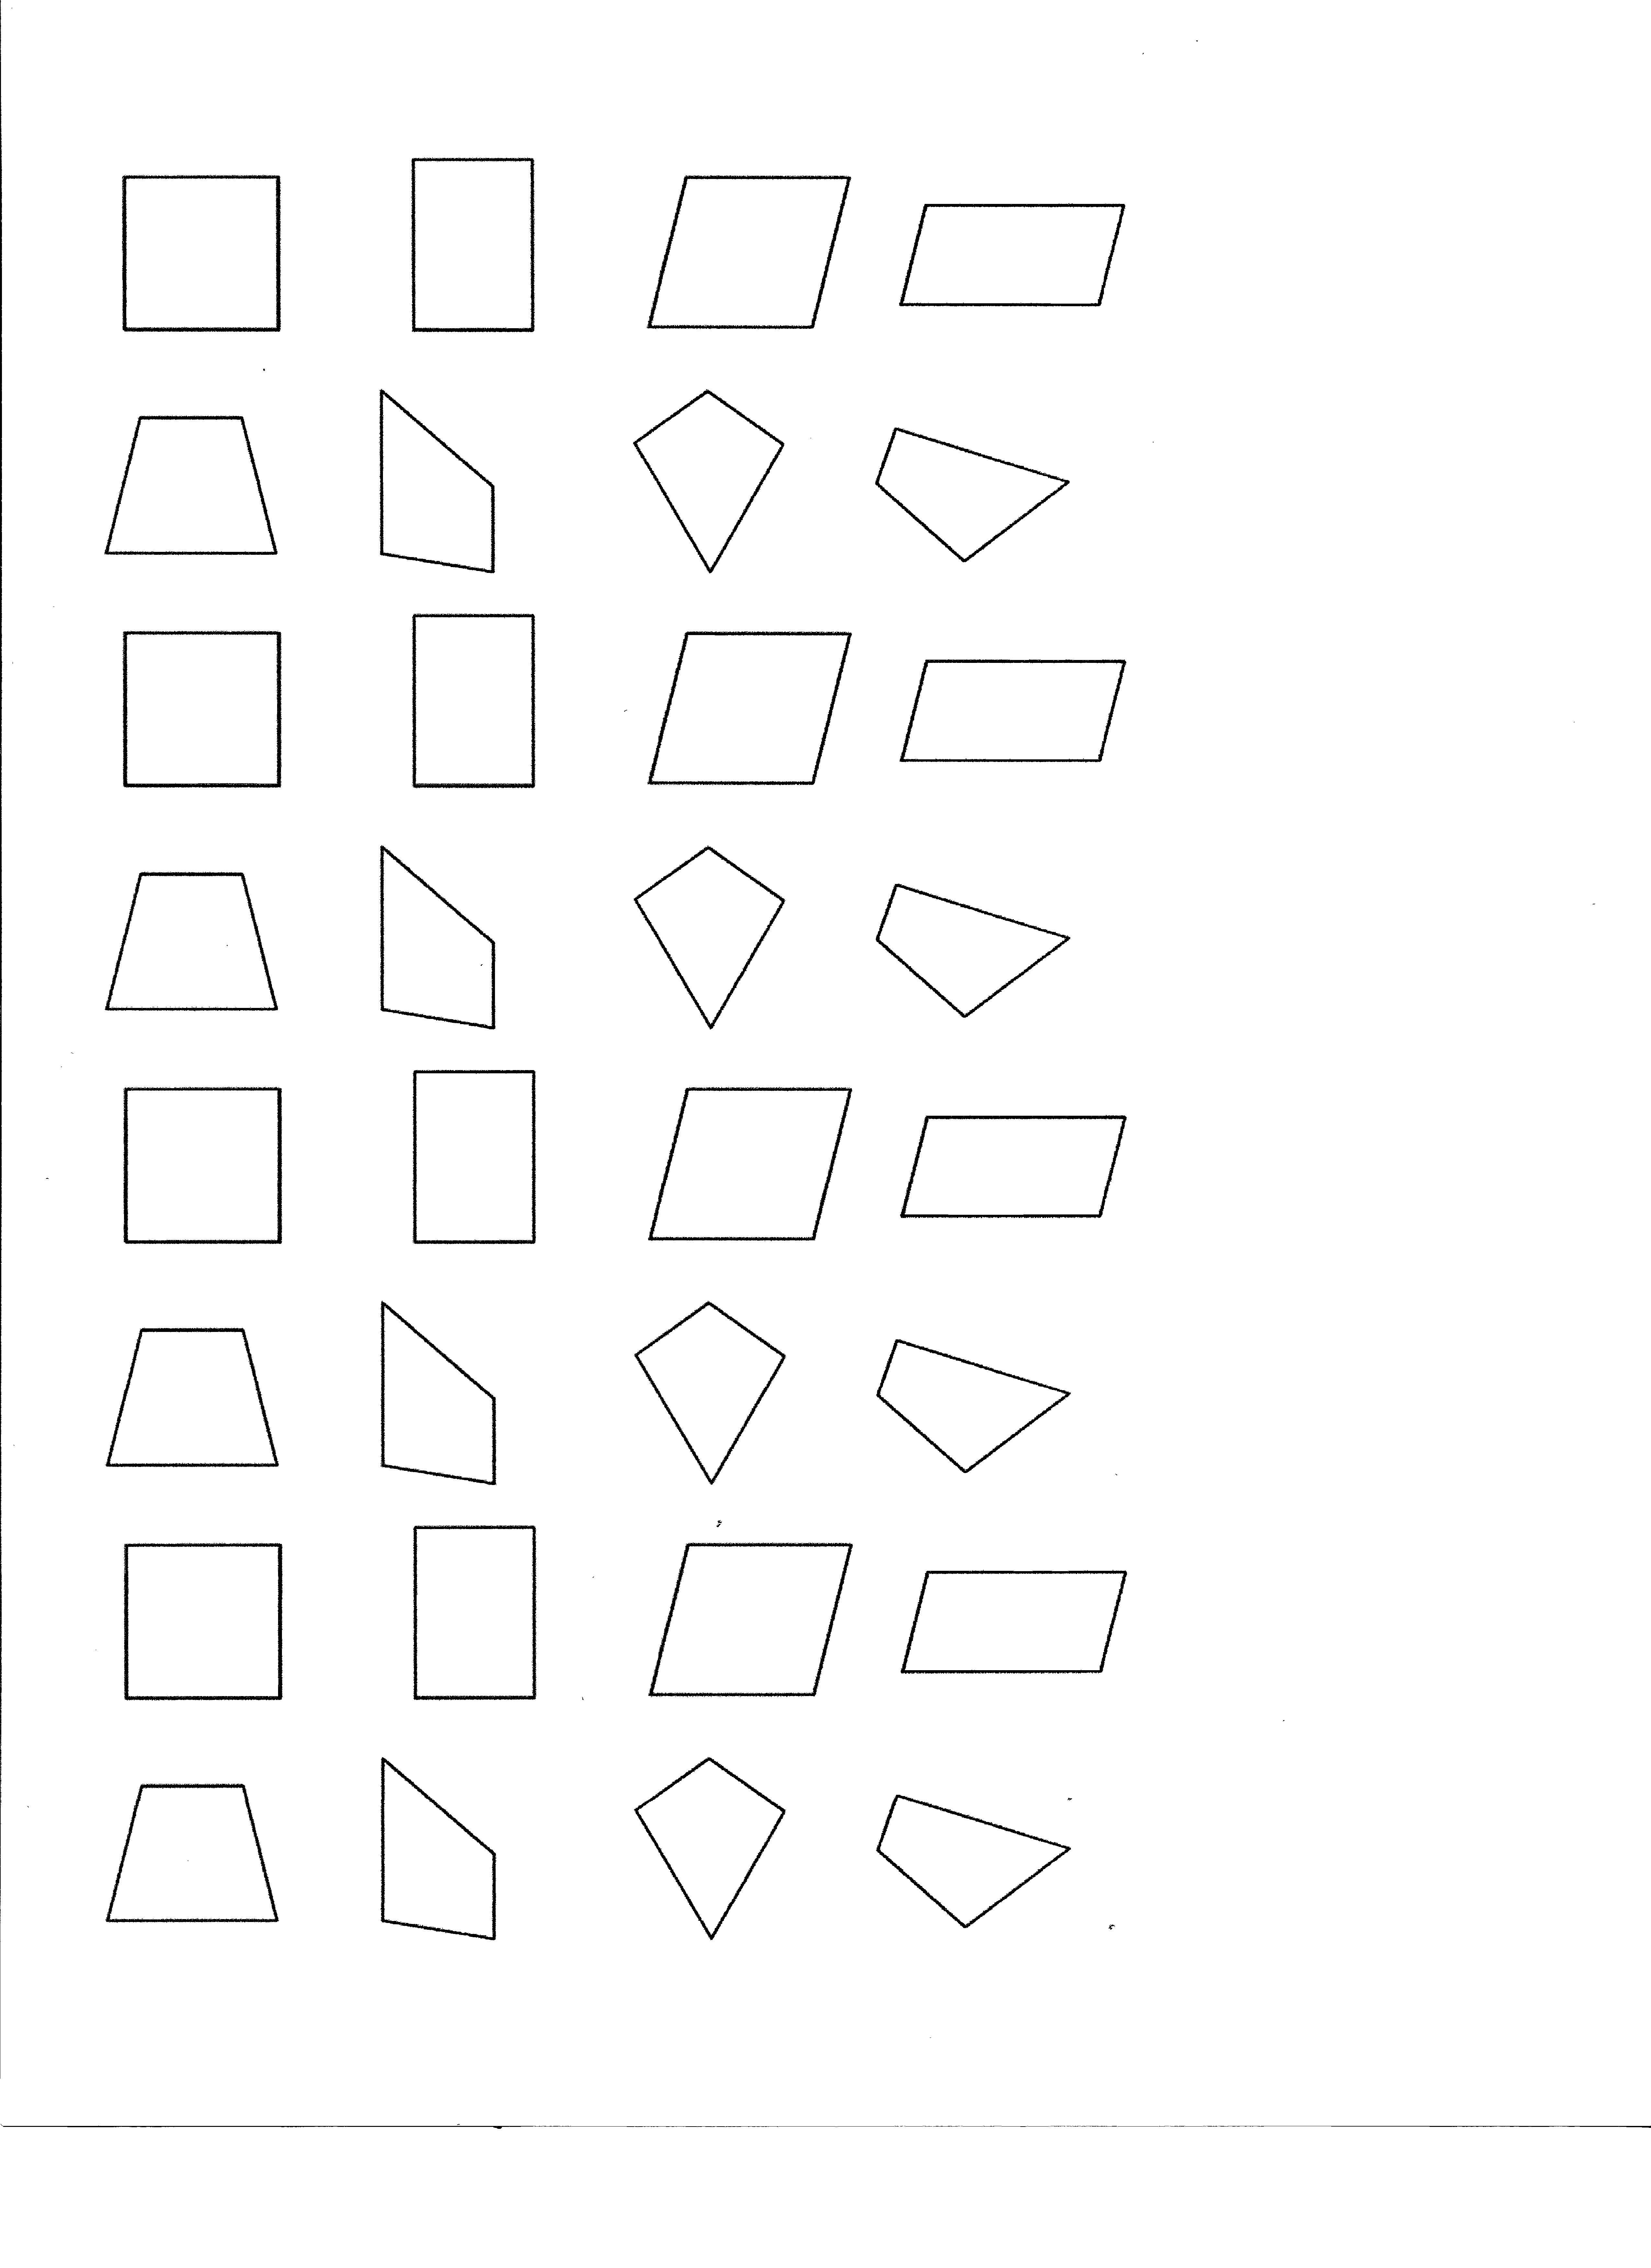 medium resolution of Classifying Quadrilaterals Worksheets   Printable Worksheets and Activities  for Teachers